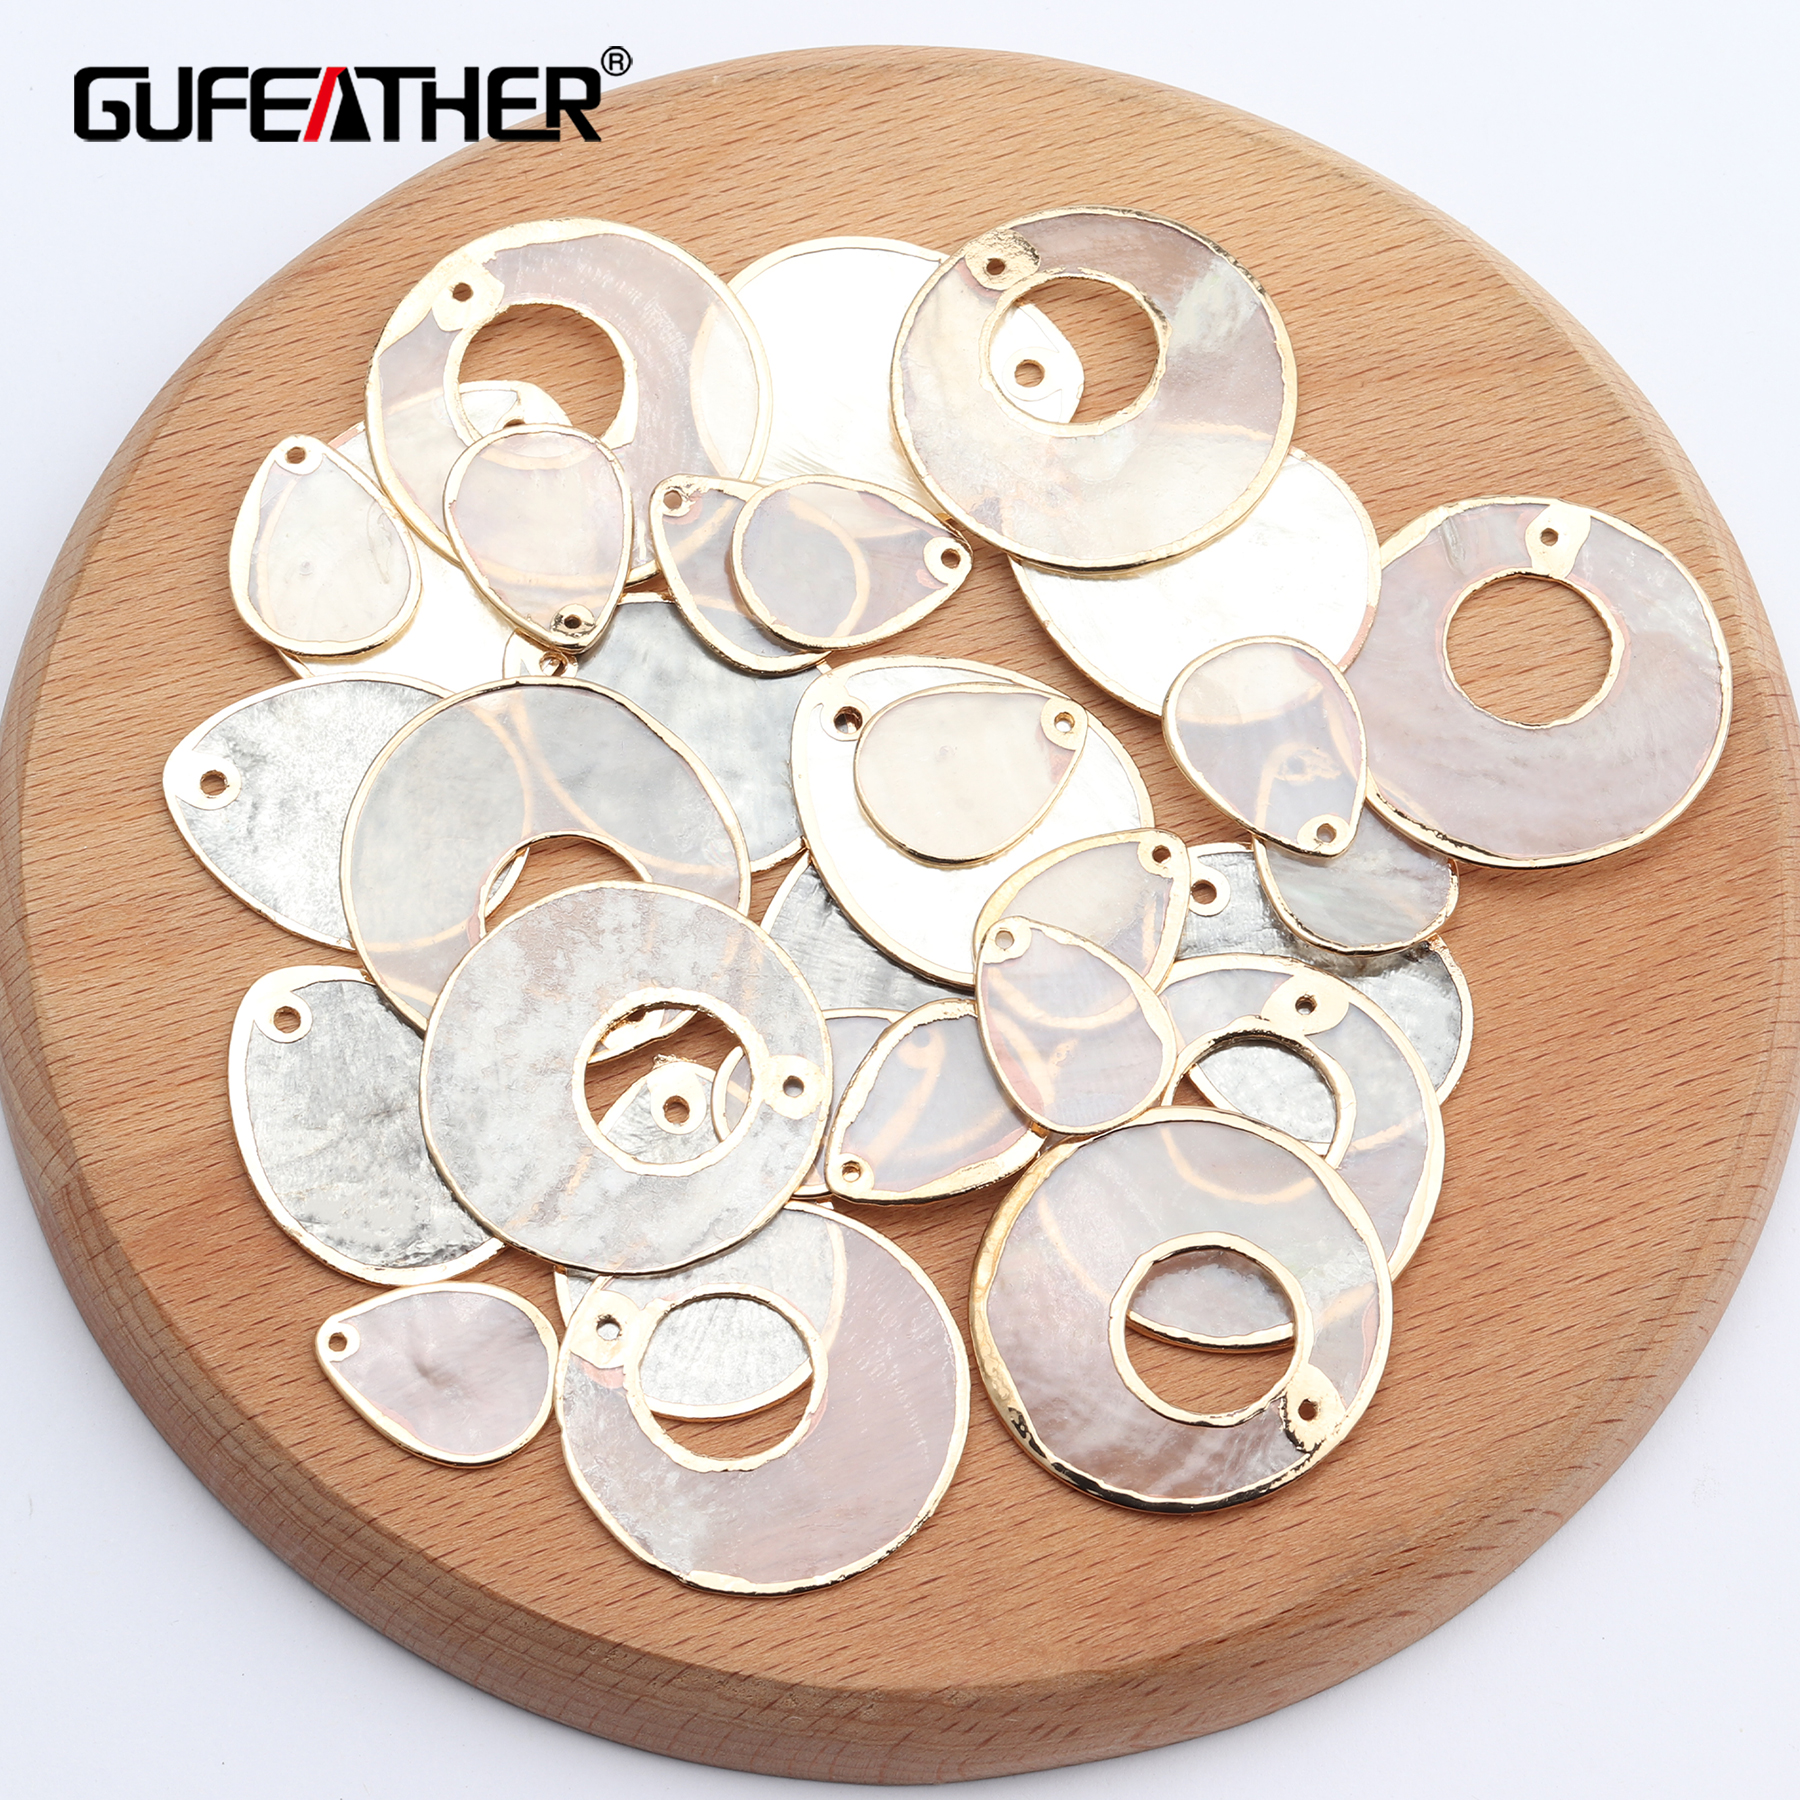 GUFEATHER M638,jewelry Making,diy Shell Pendant,jewelry Findings,charms,copper Metal,hand Made,diy Earrings,10pcs/lot